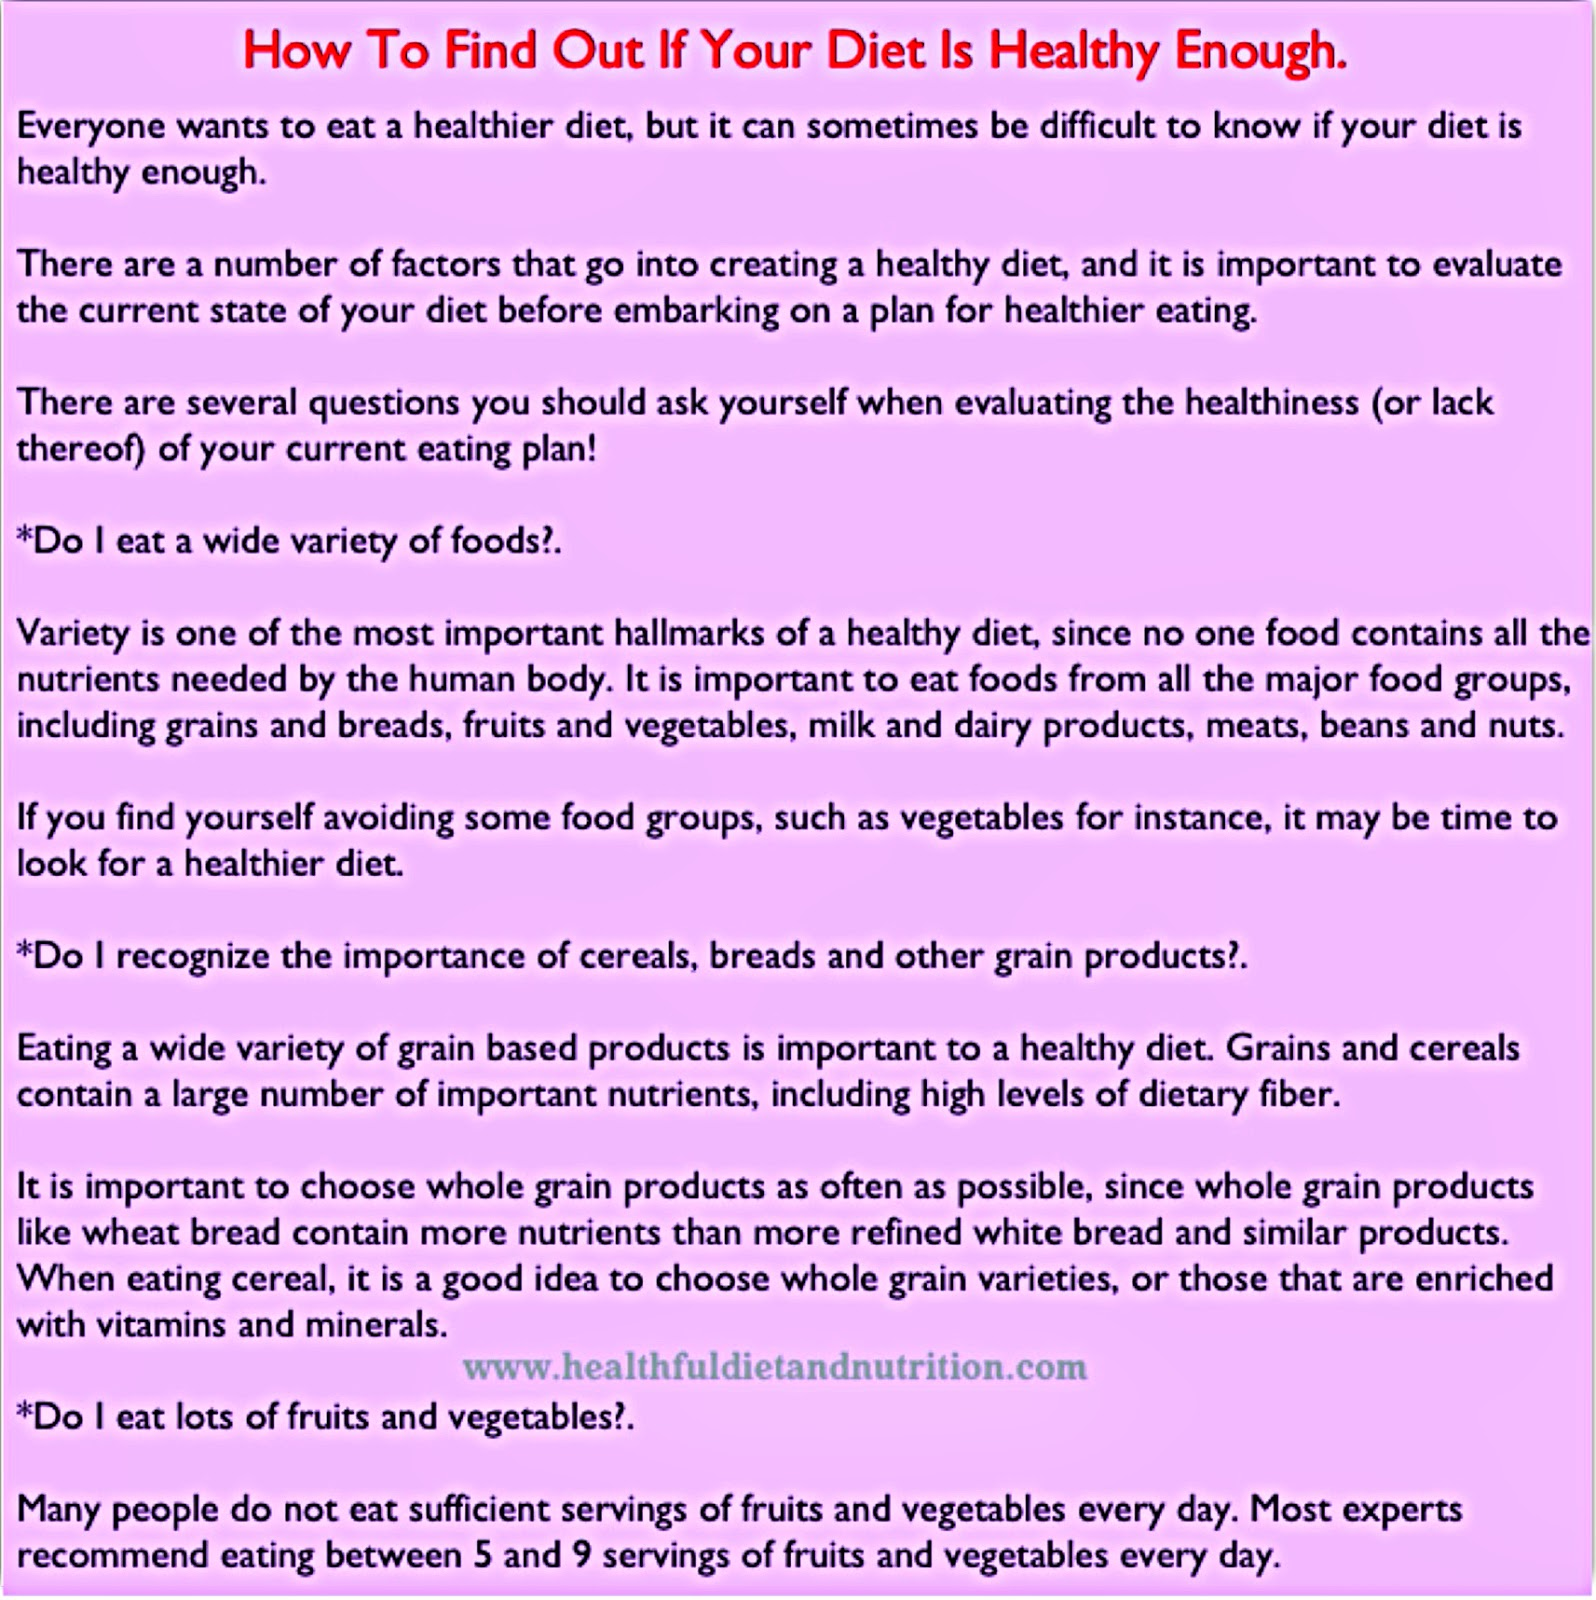 How To Find Out If Your Diet Is Healthy Enough.